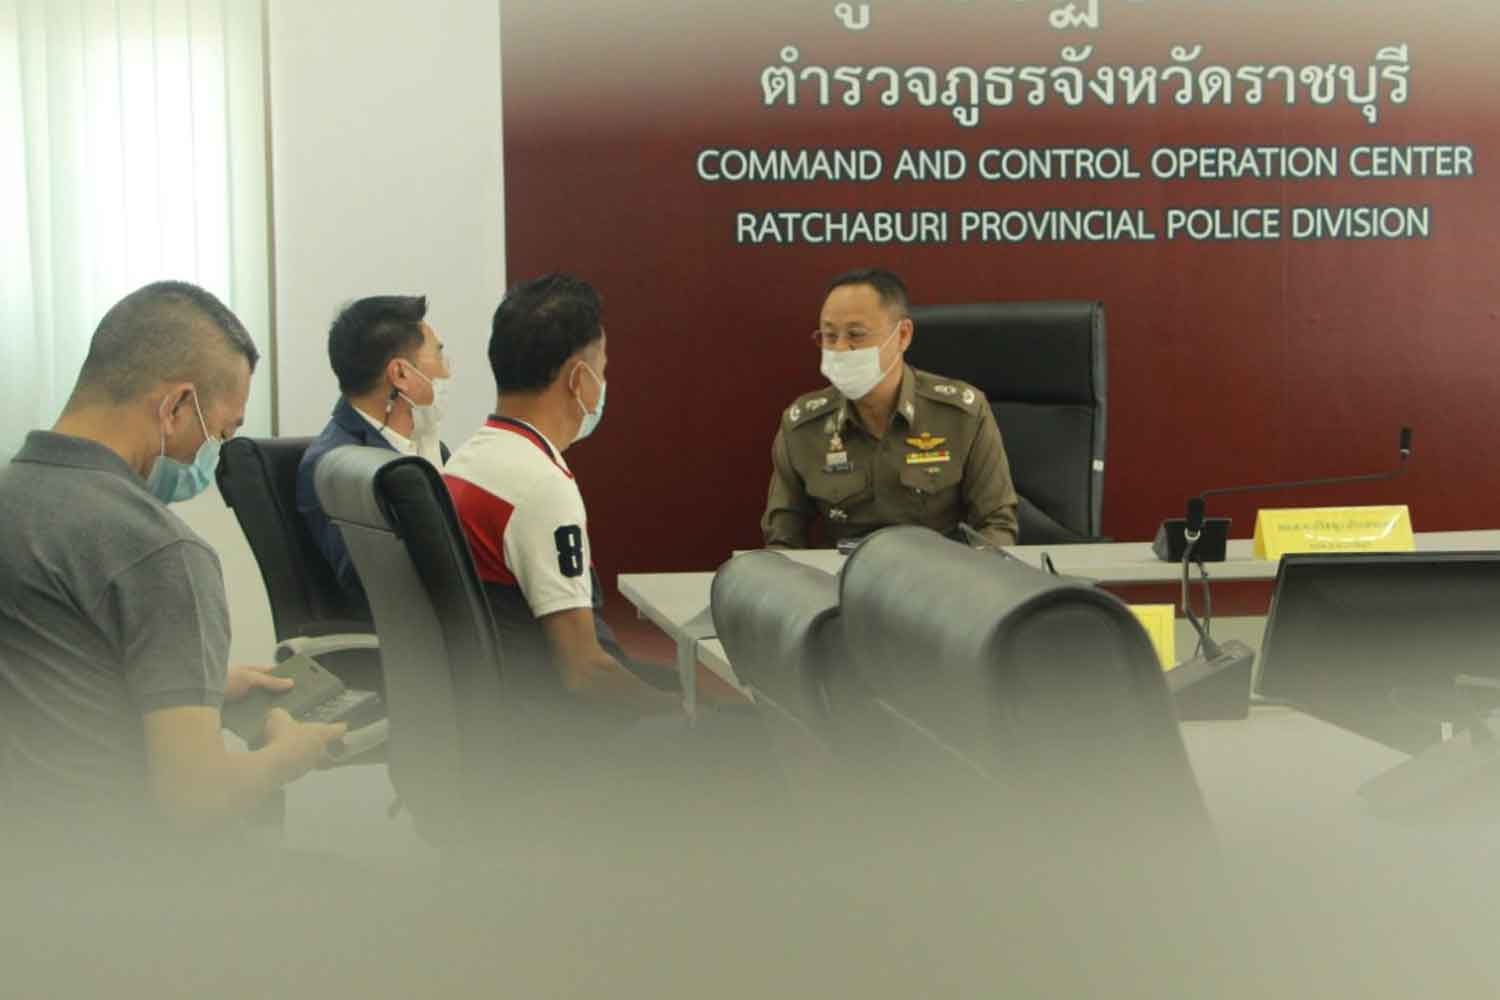 Wanchart Niamraksa, third from left, surrenders to the Ratchaburi police chief on Tuesday. He is the prime suspect in the shooting at a funeral in Photharam district on Monday night which took the life of a mayoral candidate running against his wife, and left six other people wounded. (Photo: Saichol Srinuanchan)